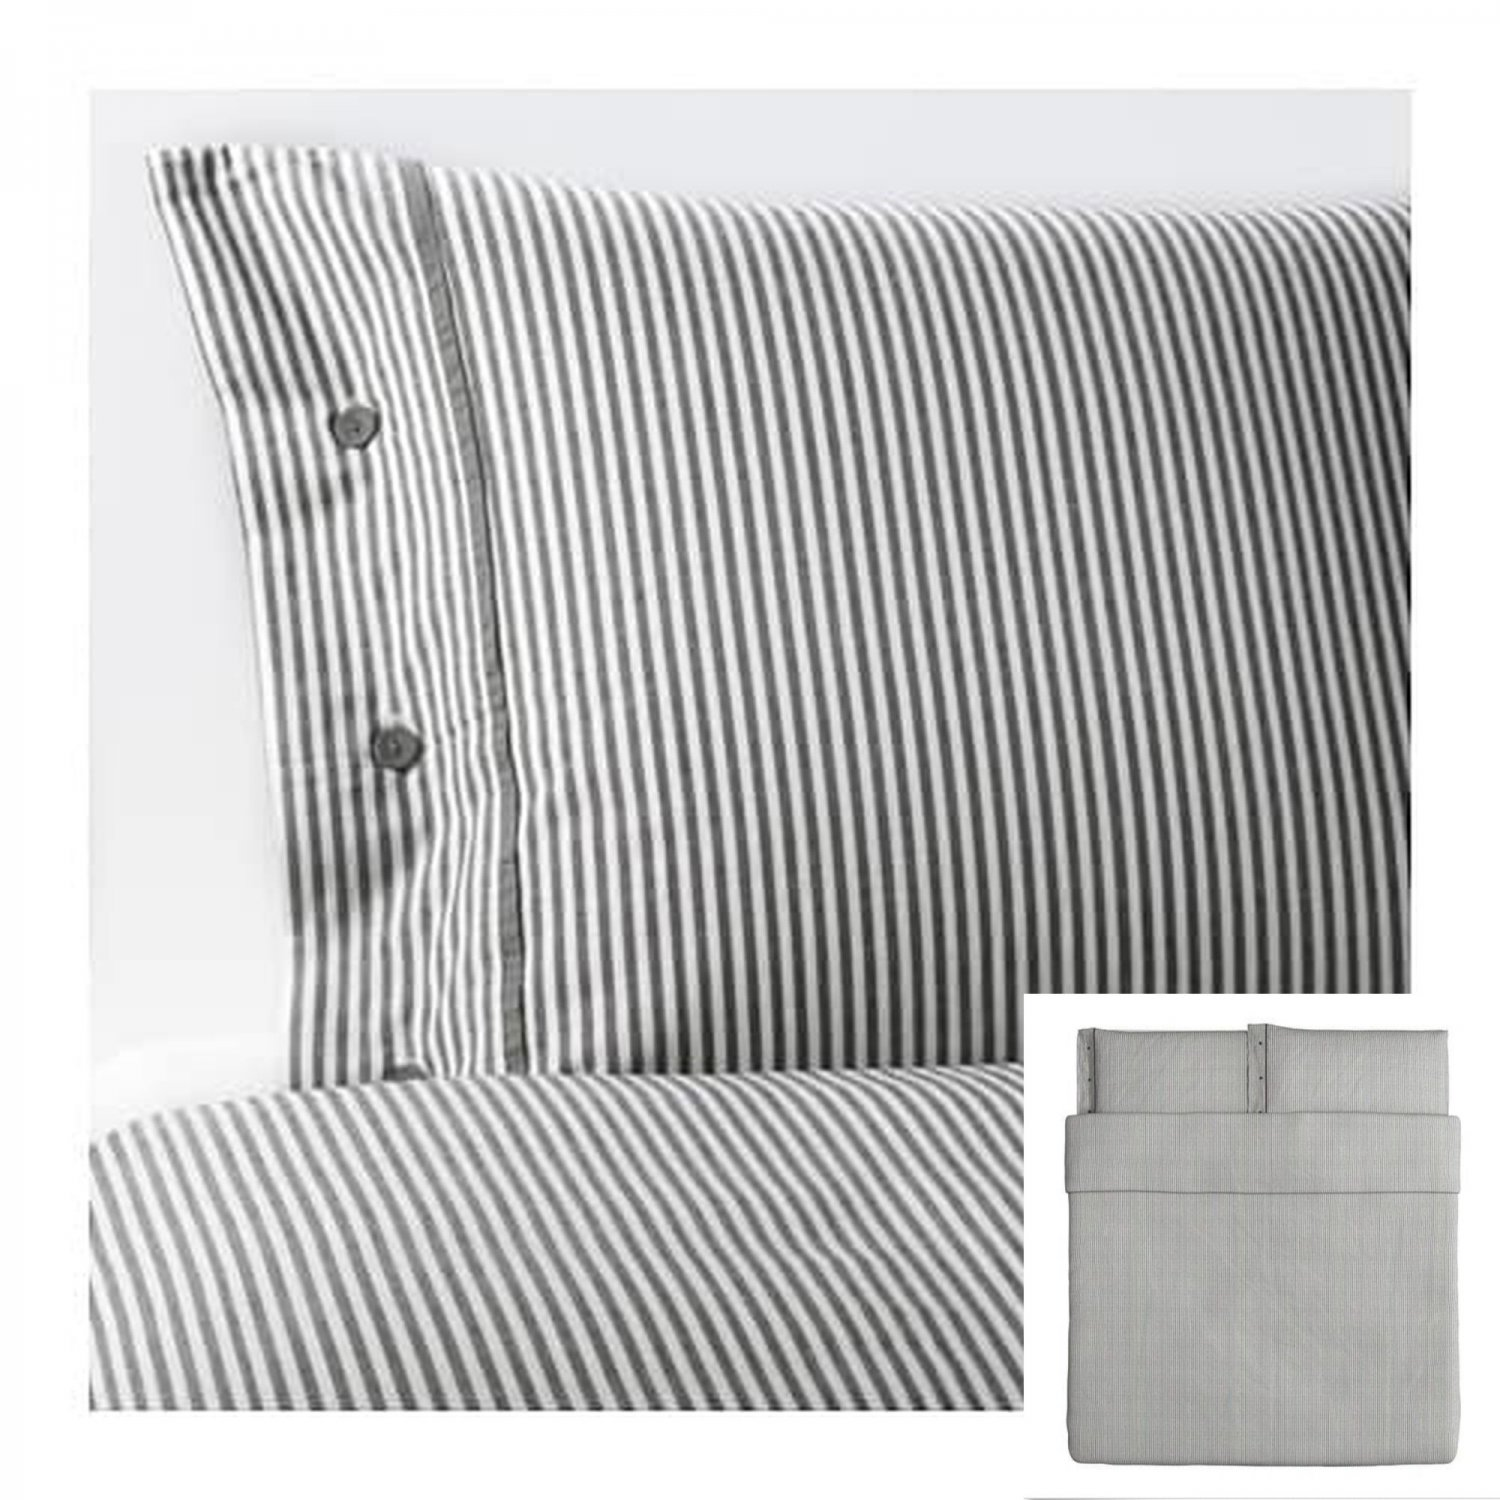 IKEA Nyponros KING Duvet COVER Set TICKING STRIPES GRAY Yarn Dyed SOFT Grey